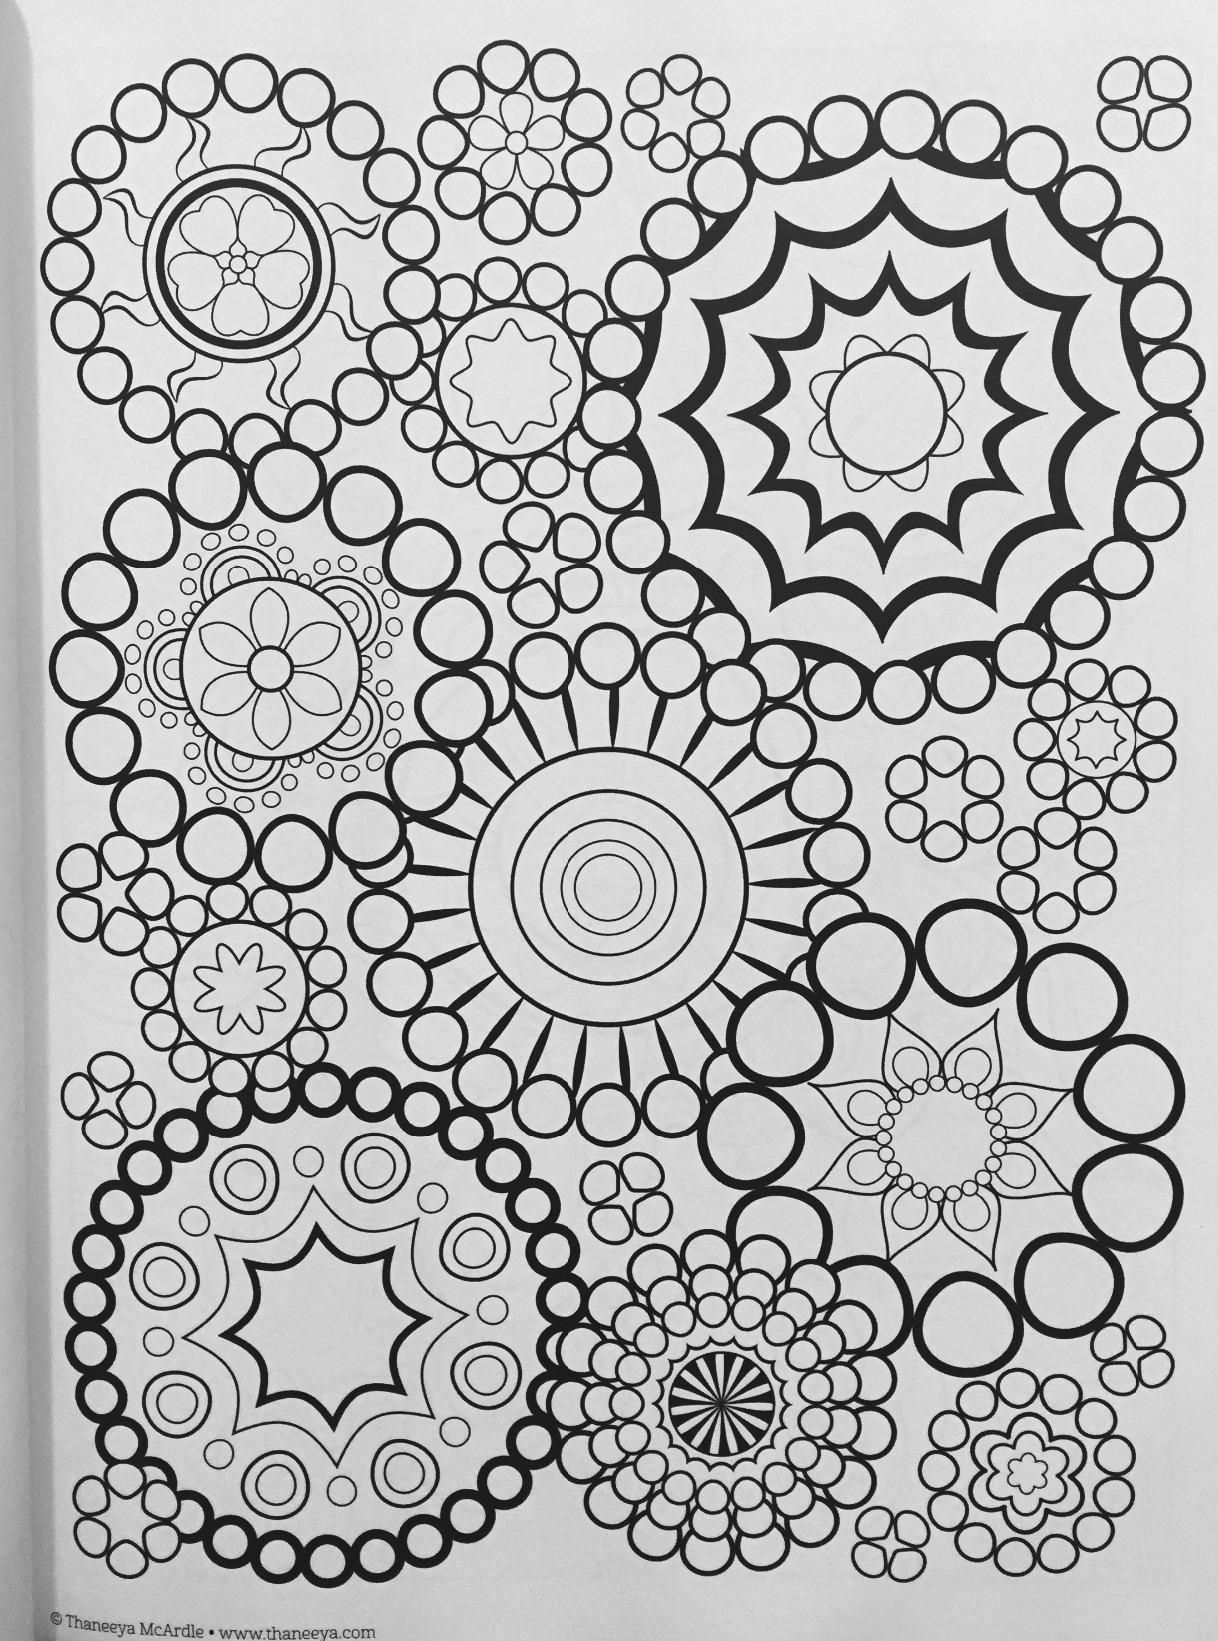 groovy abstract coloring book design originals coloring is fun